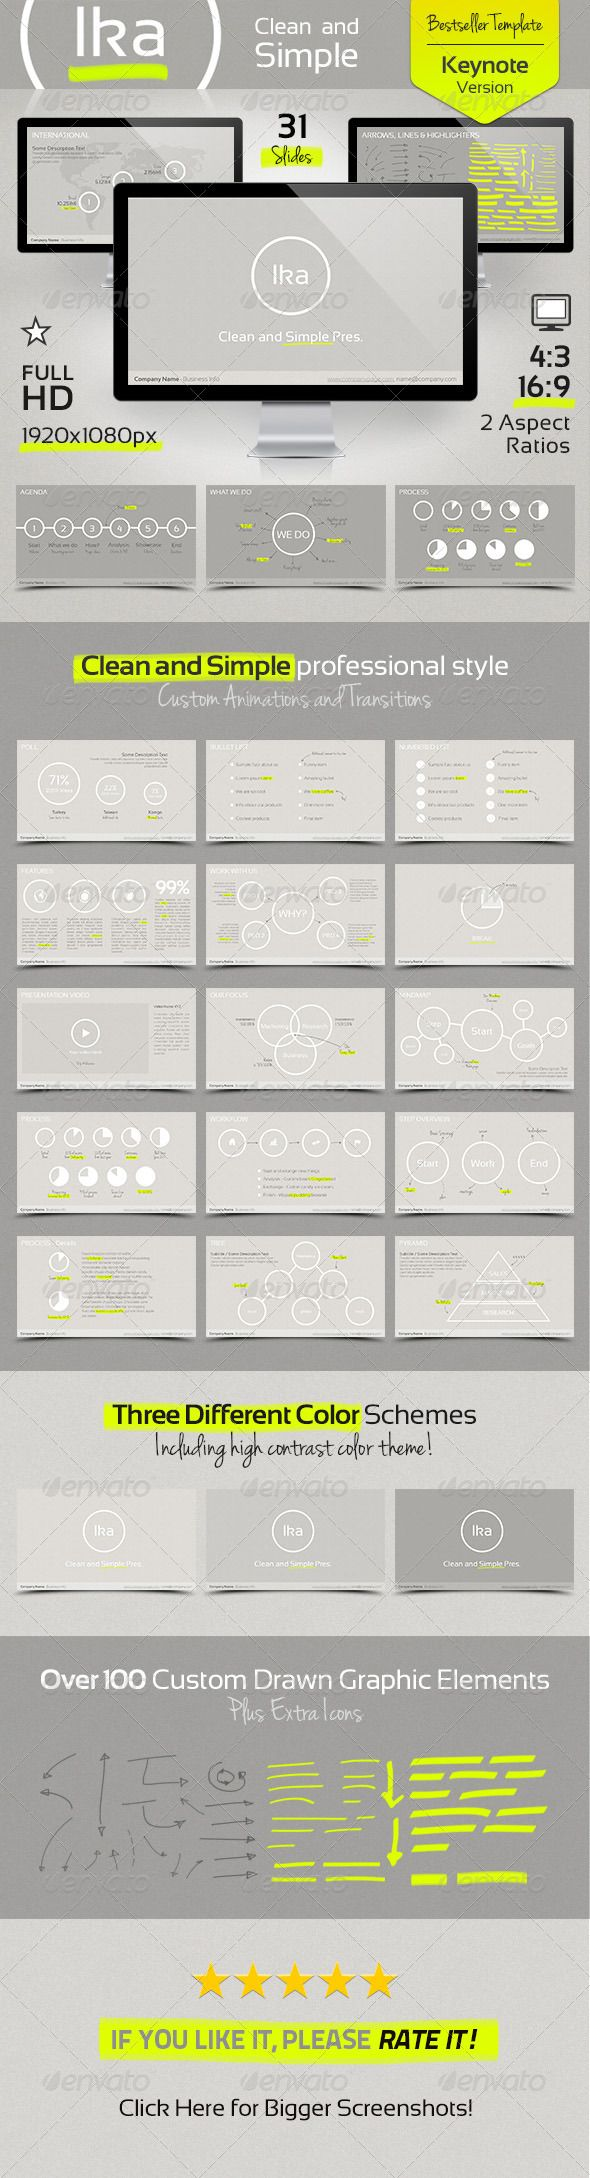 Ika - Clean and Simple Keynote Template  #GraphicRiver        Ika, Clean and Simple Keynote Presentation. Ika is a Keynote Presentation Template with custom graphic elements and animations. Recommended for those who want to keep it classy, with clean and simple presentations, yet very stylish. This presentation has unique simple colors (which come in 3 different variations), and 100+ graphic elements (handwritten arrows, lines and colored markers). It is highly customizable with easiness…